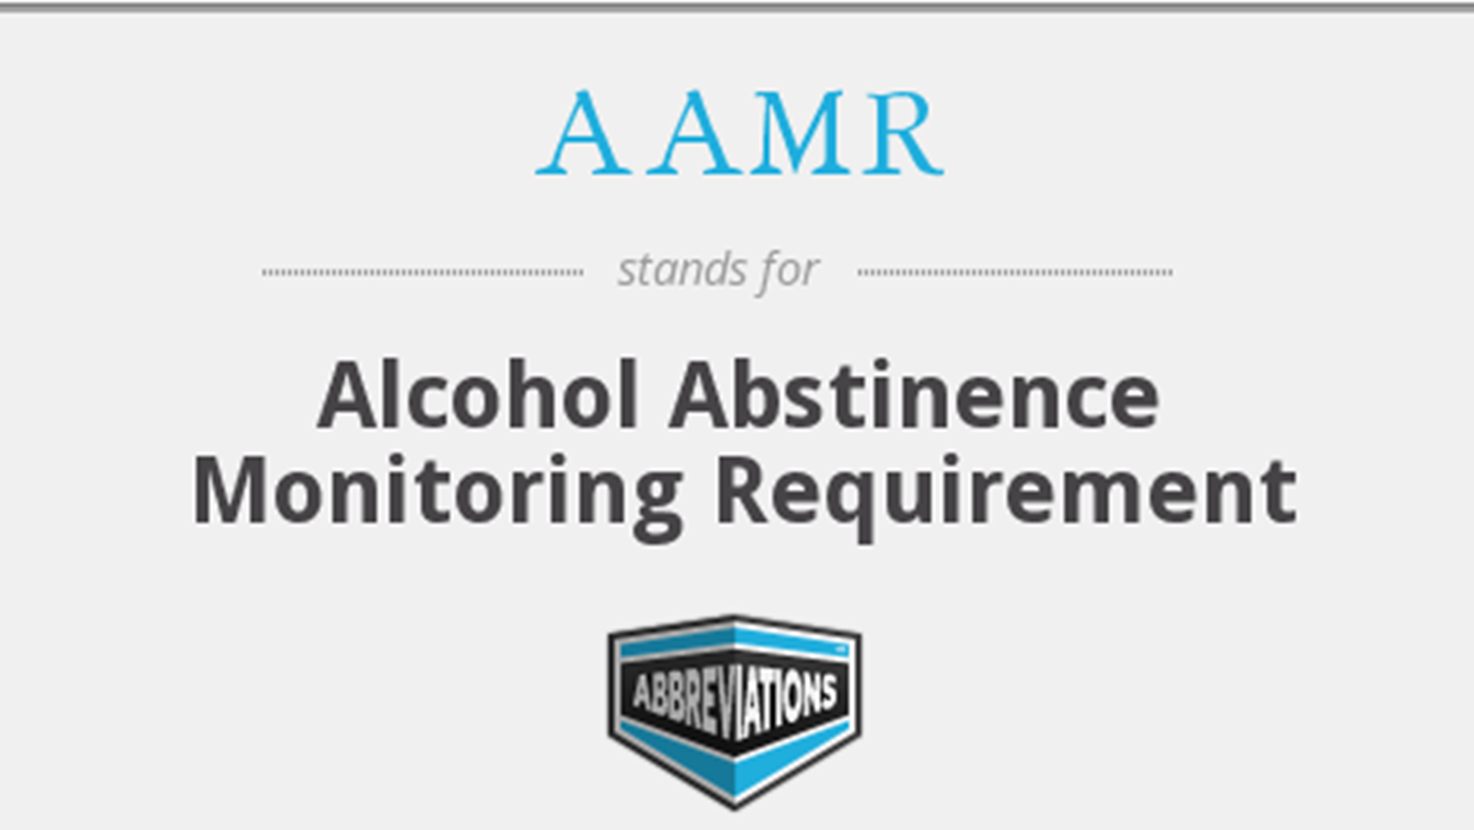 Alcohol Abstinence Monitoring Requirement (AAMR)